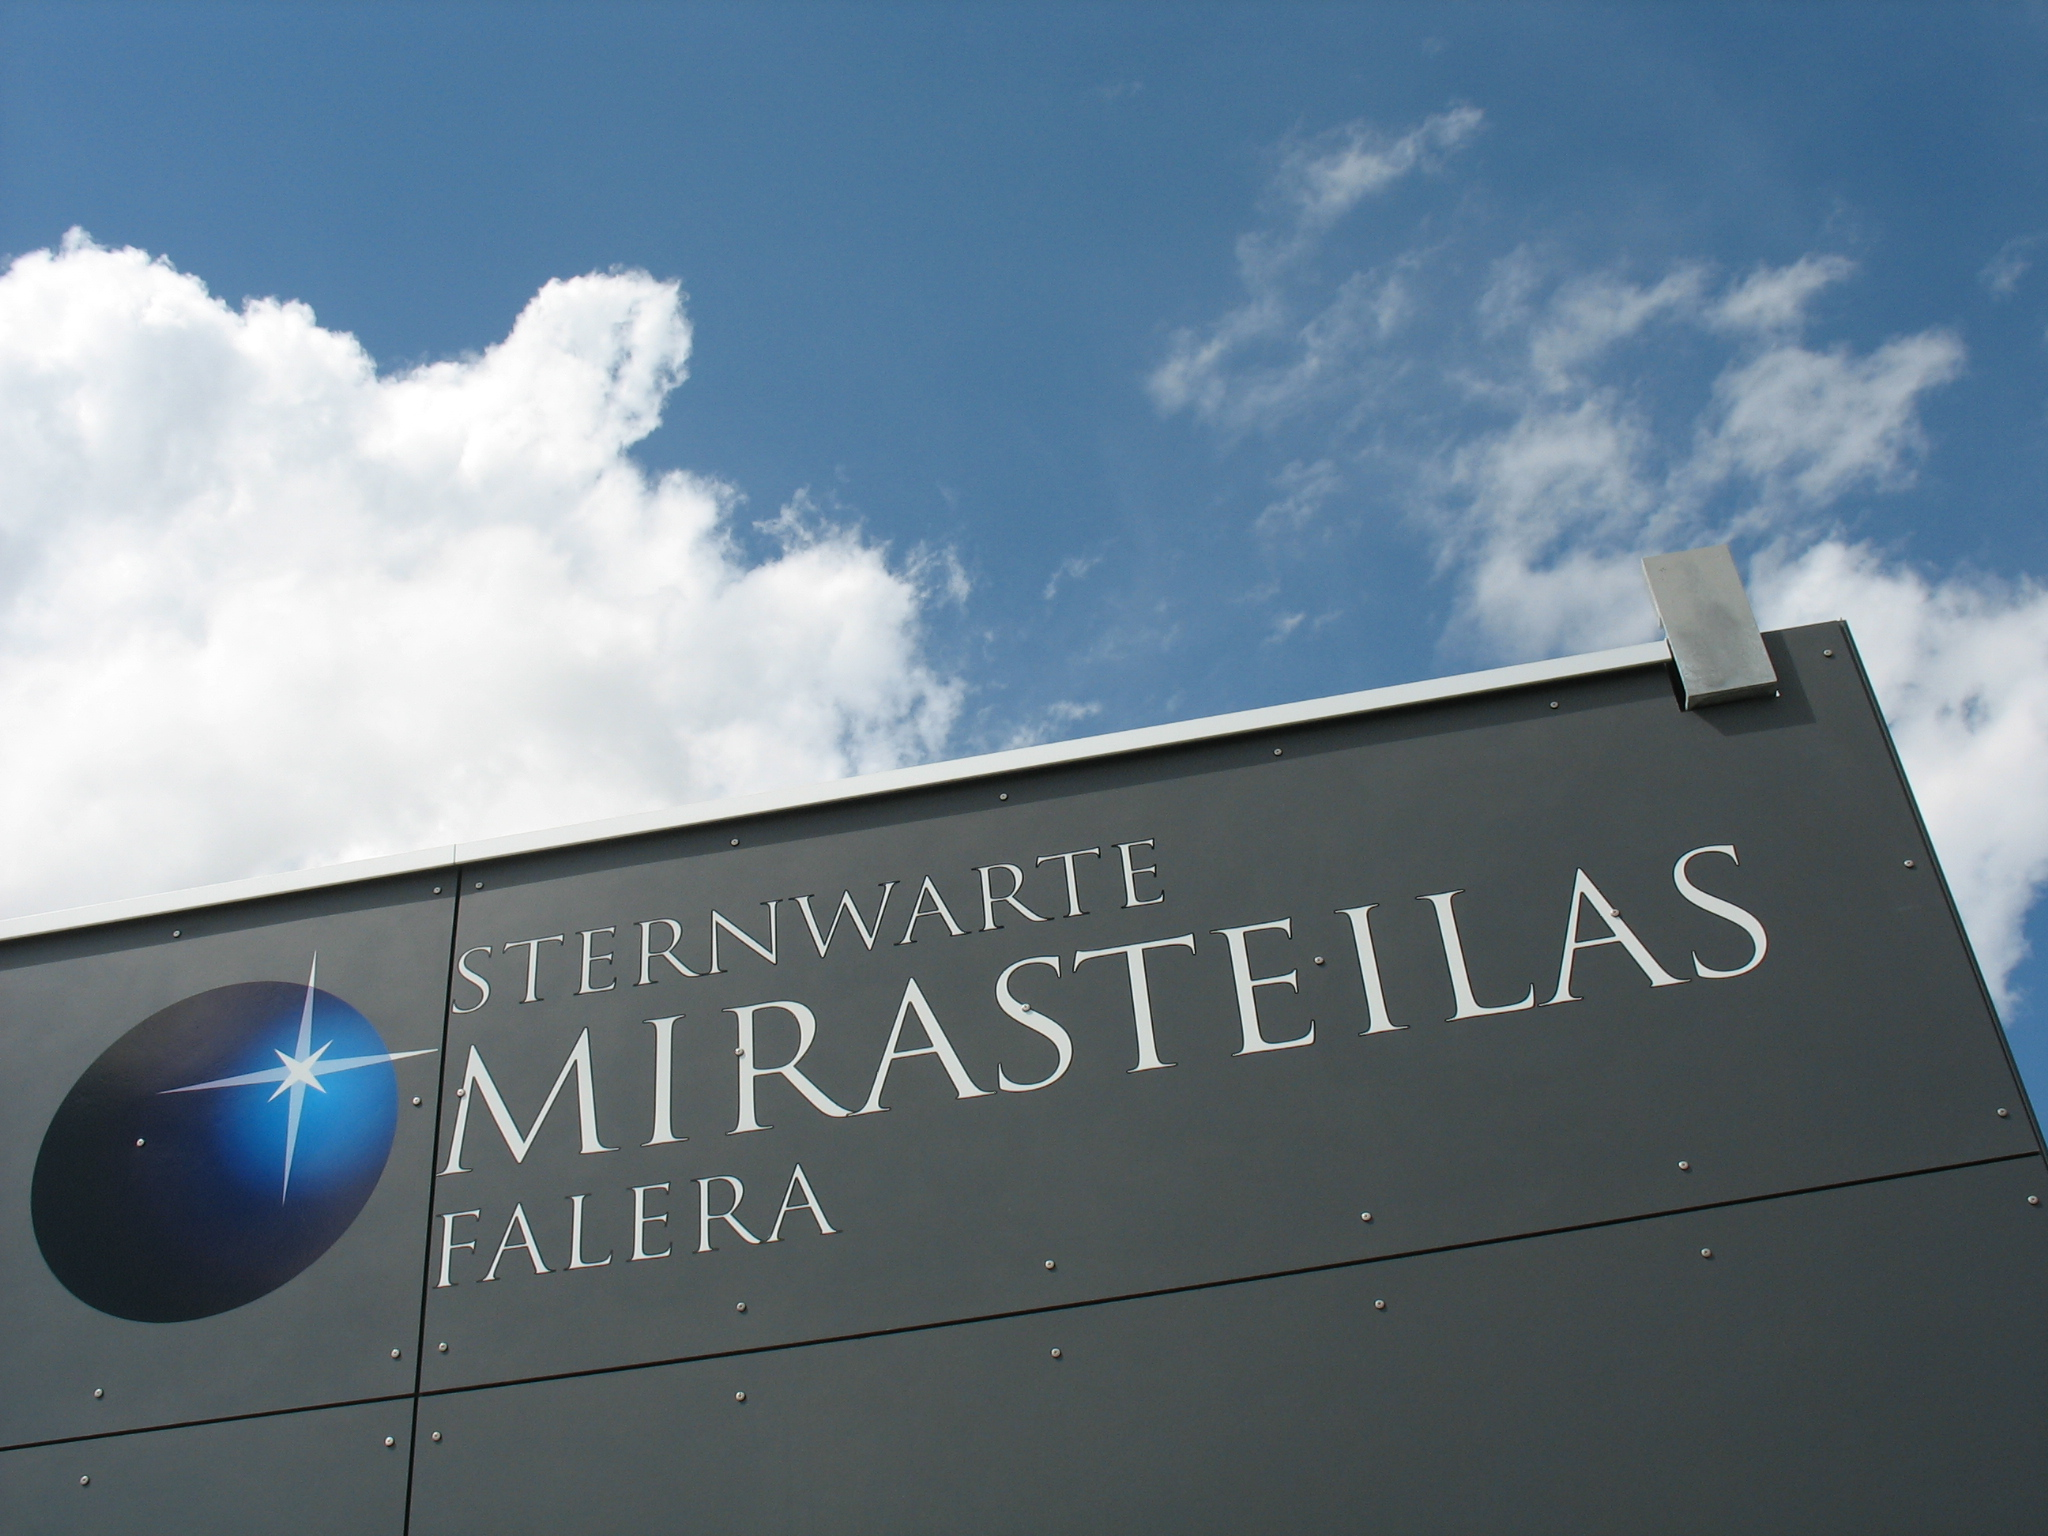 Guided tour at observatory Mirasteilas Falera